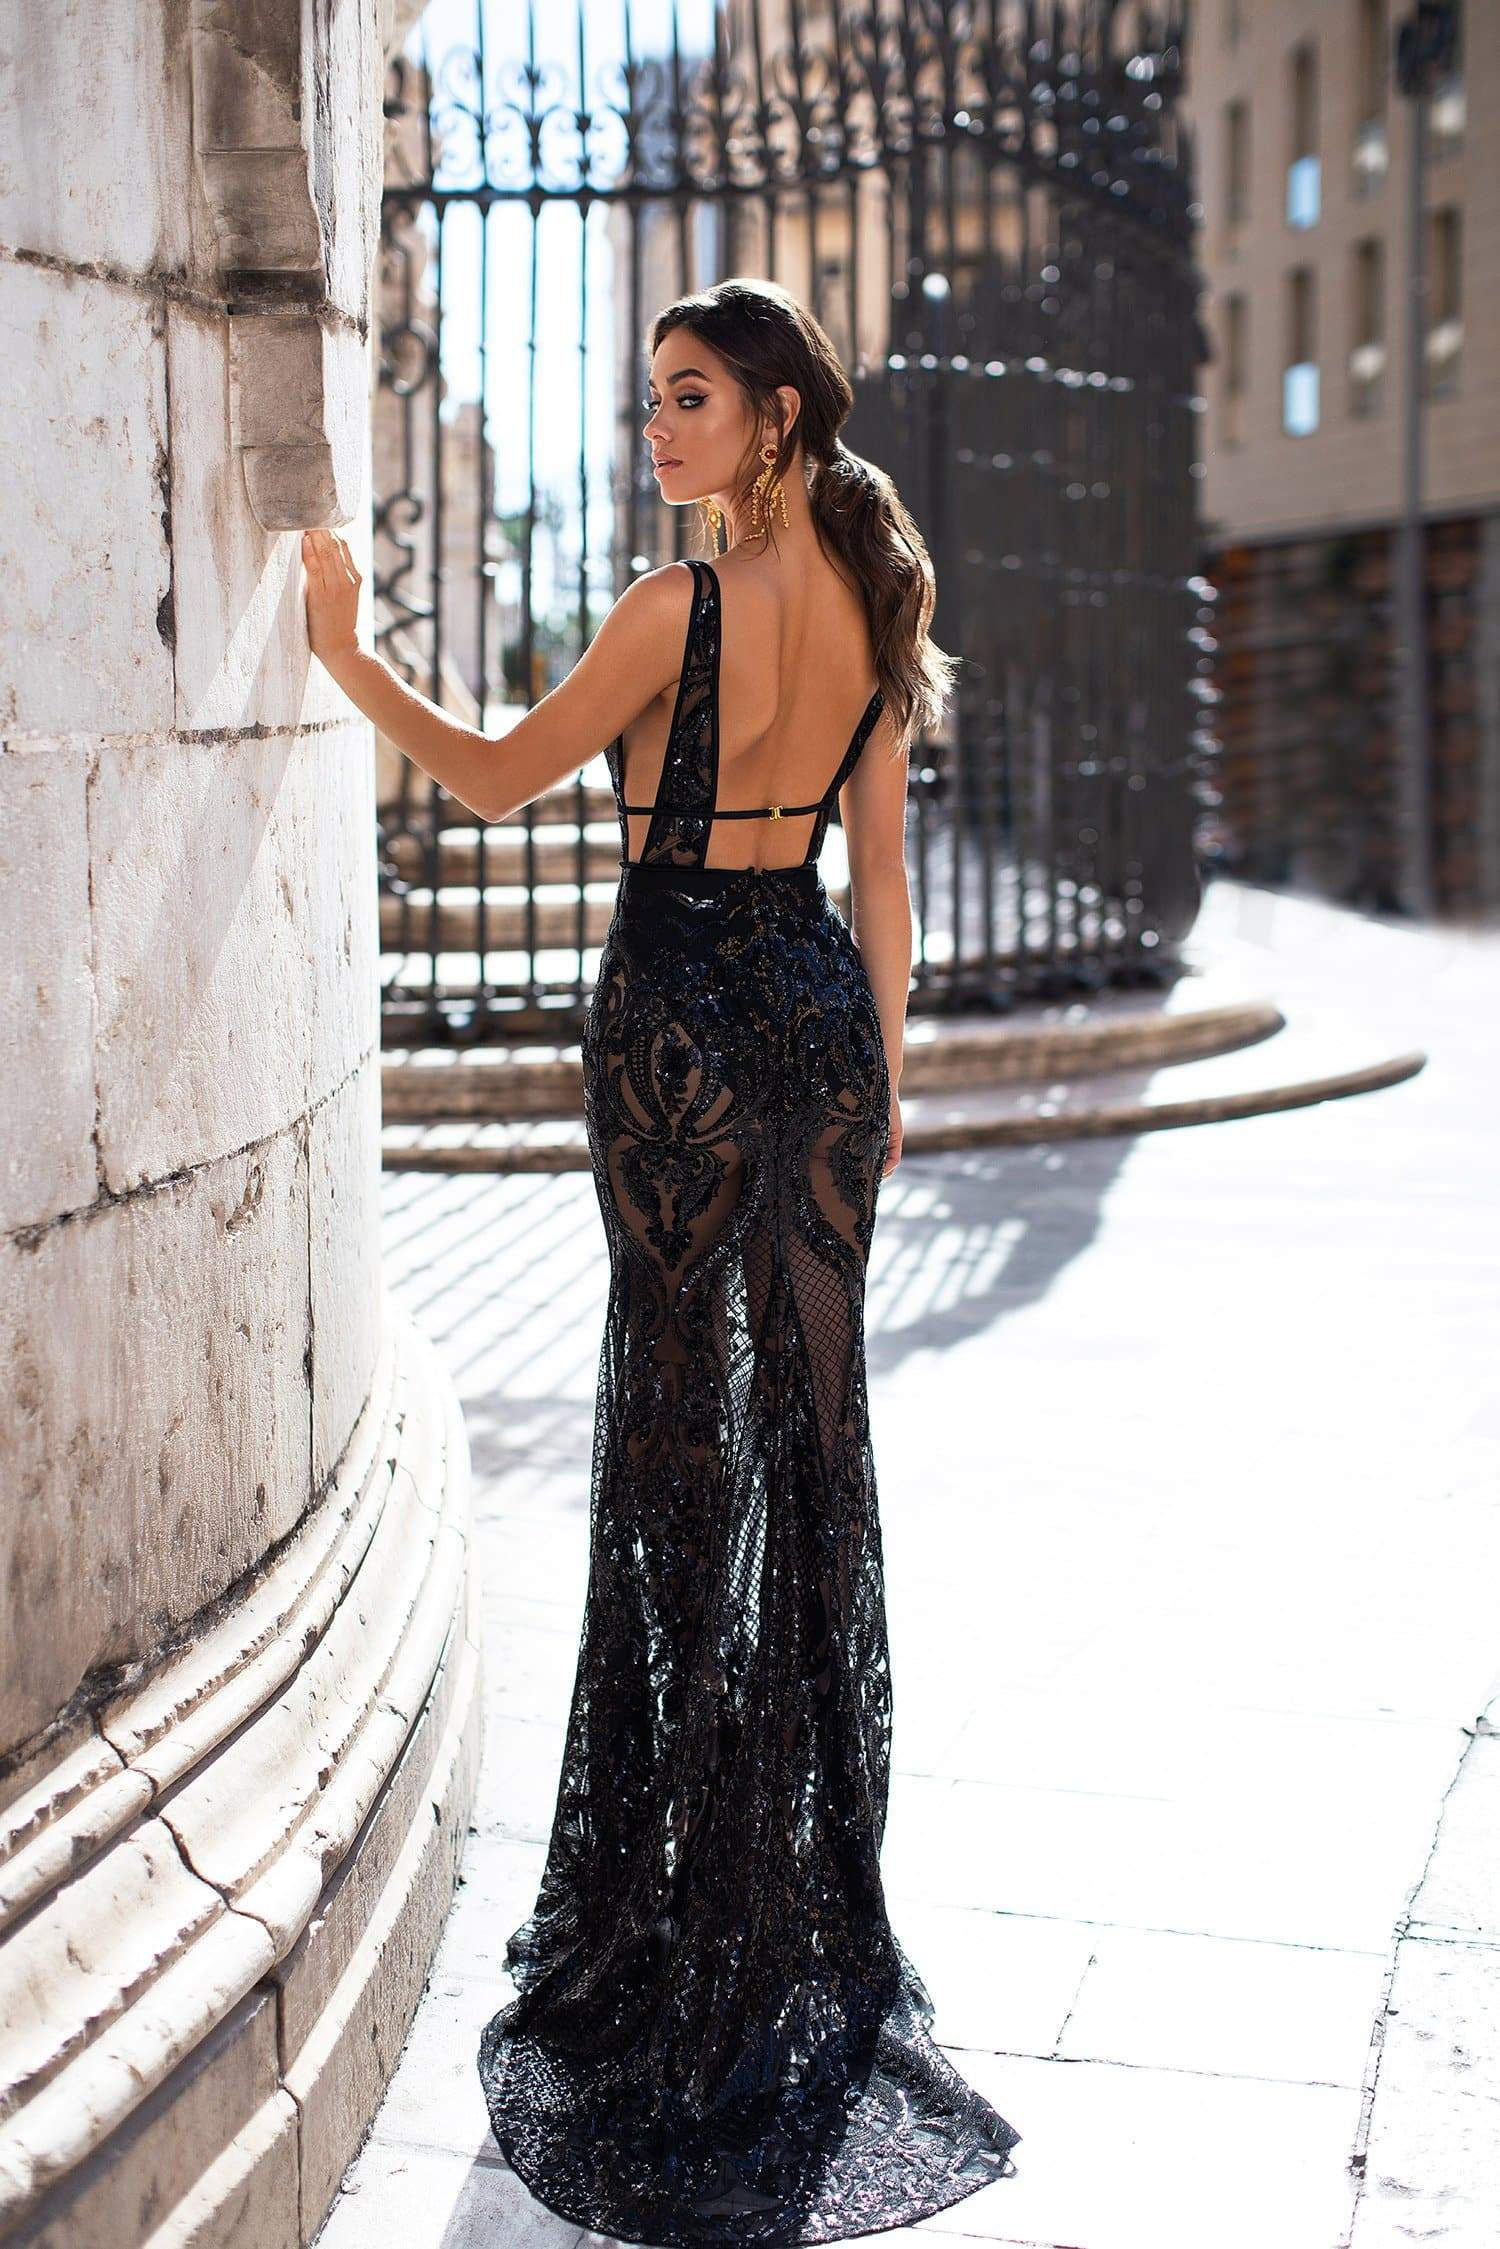 869a72b2e40 Elyse - Black Patterned Sequins Gown with Plunge Neck   Open Back